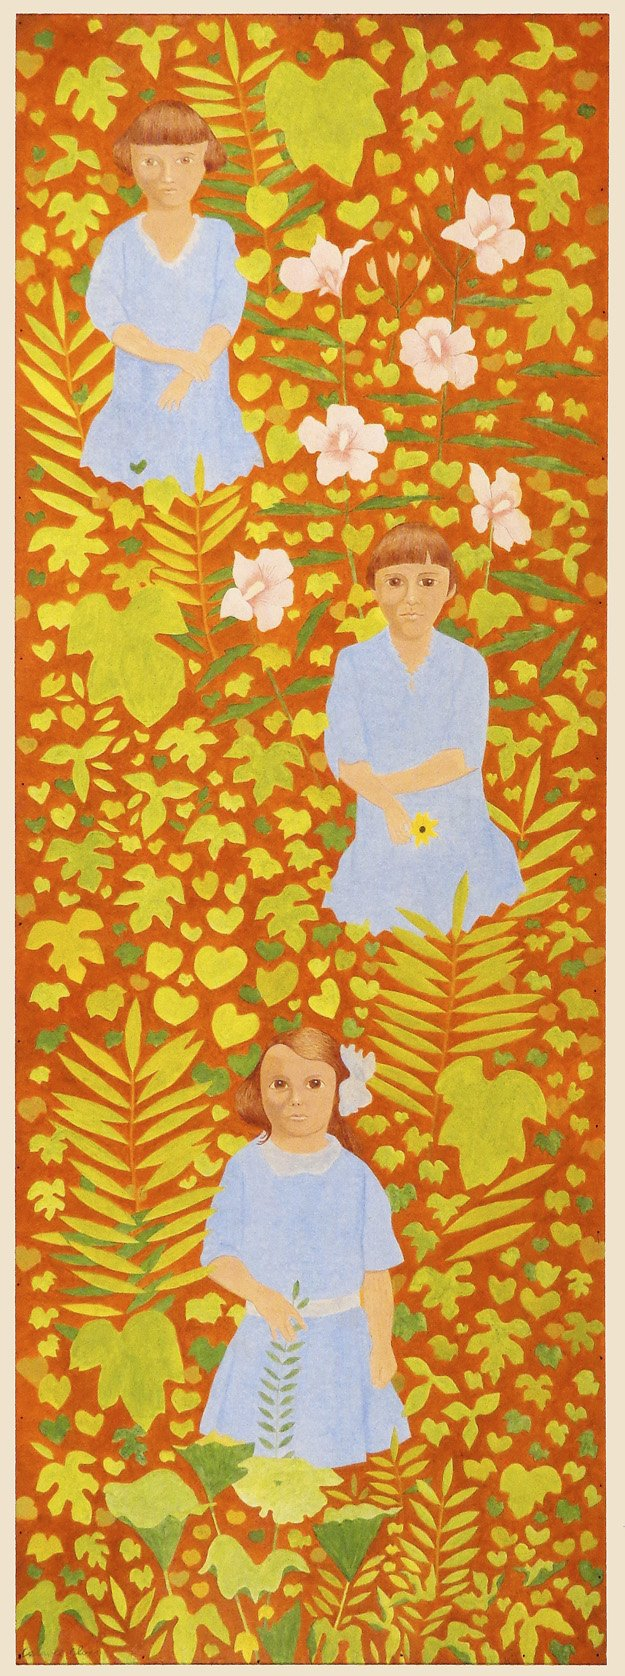 Carroll Cloar, American, 1913-1993The Garden of Love, ca. 1960Acrylic on plywoodCollection of Barbie and Ray Dan©Estate of Carroll Cloar